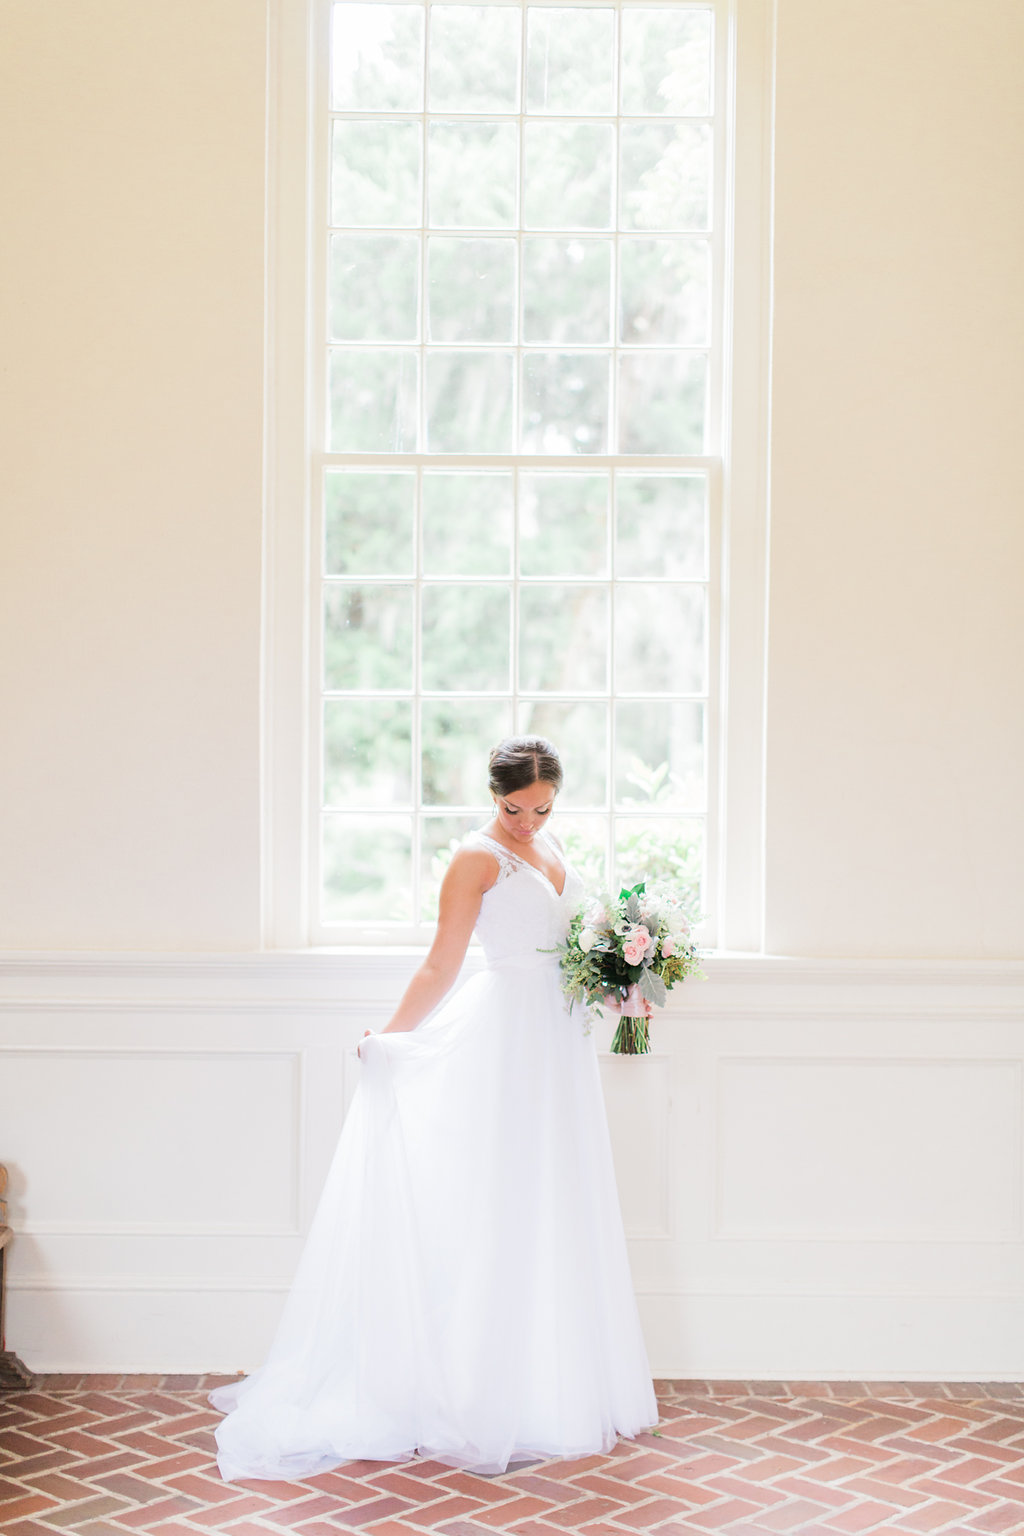 the-happy-bloom-photography-ivory-and-beau-wedding-planning-ivory-and-beau-bridal-boutique-whitfield-chapel-wedding-10-downing-wedding-savannah-wedding-historic-savannah-wedding-savannah-wedding-planner-savannah-weddings-a-to-zinnias-12.jpg